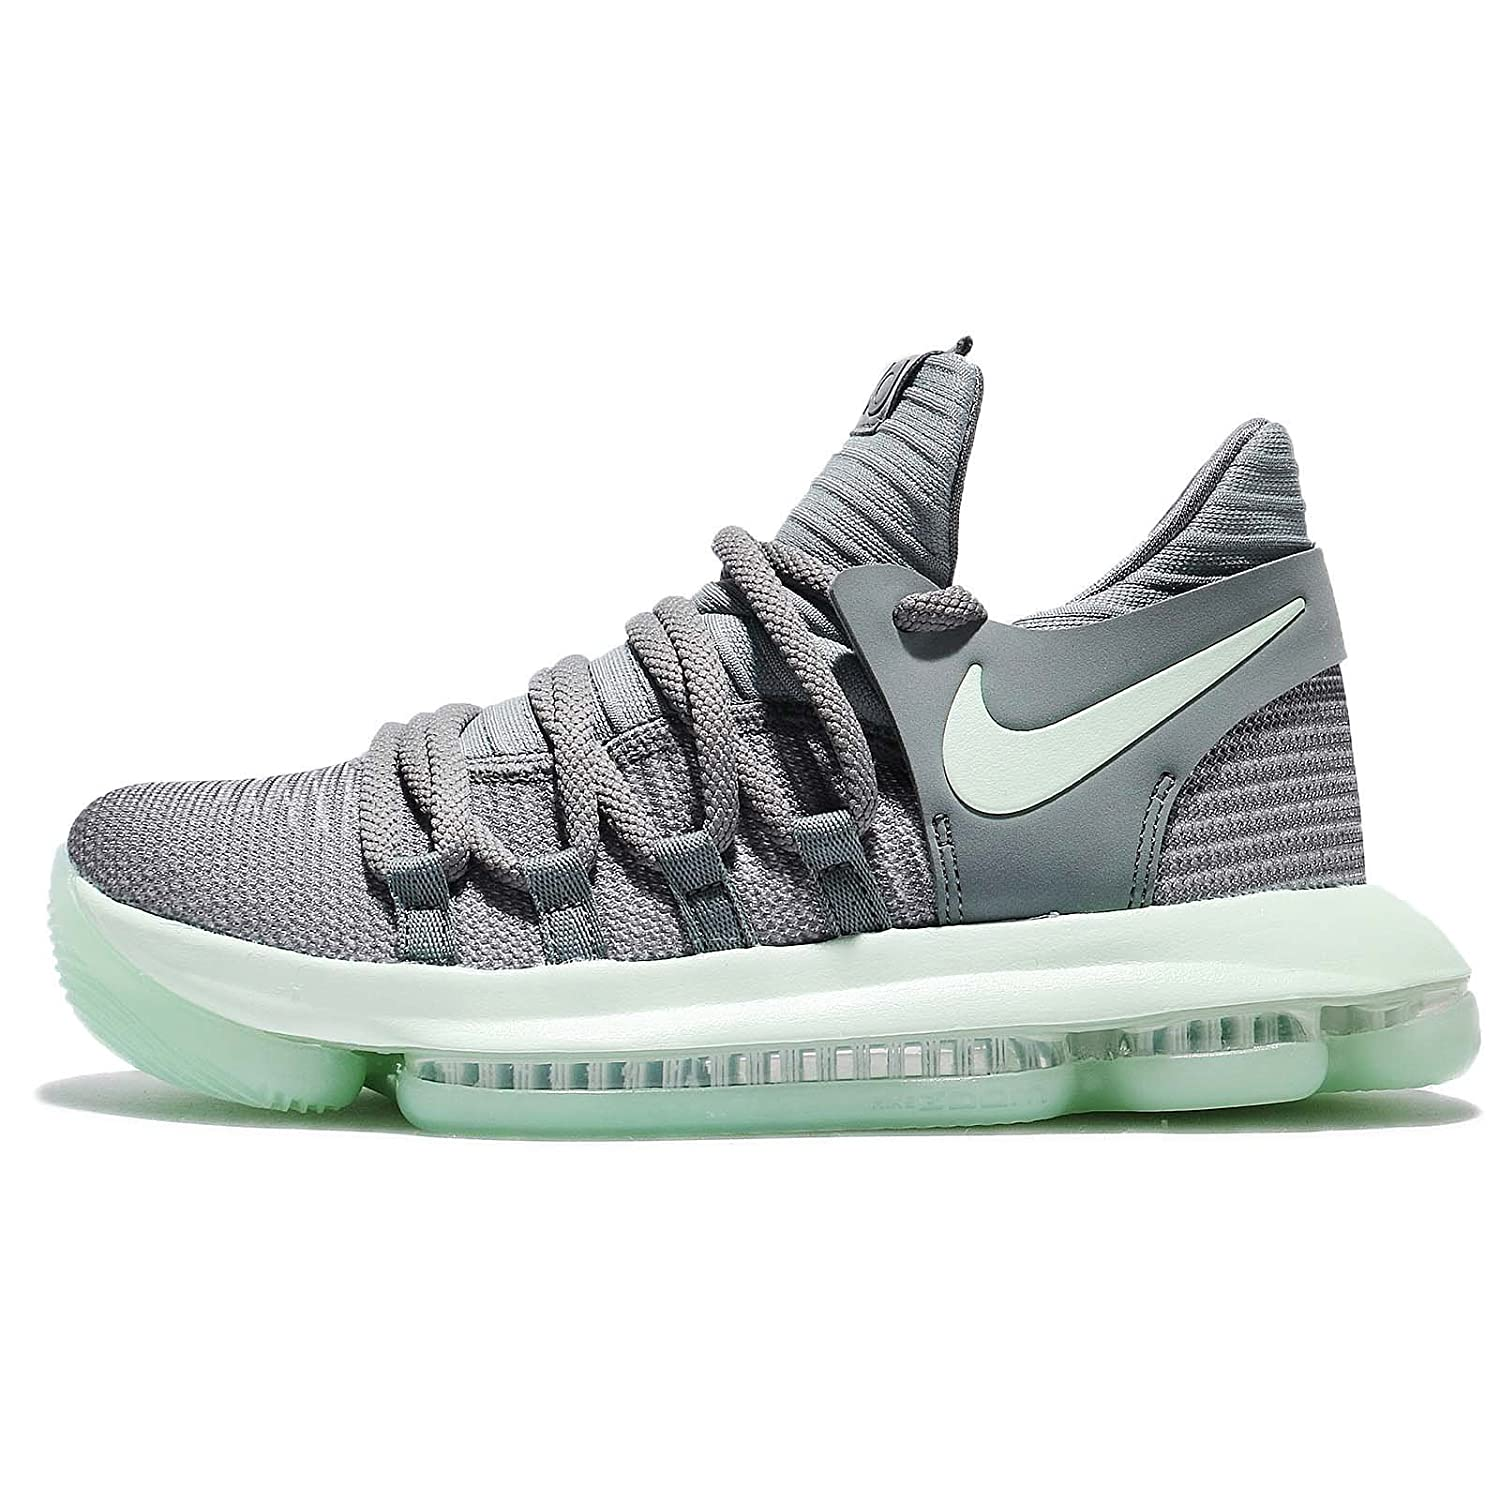 ef9470ebf61e Nike Zoom KD10 (GS) Big Kid s Basketball Shoes Cool Grey Igloo-White  918365-002 (6Y M US)  Buy Online at Low Prices in India - Amazon.in